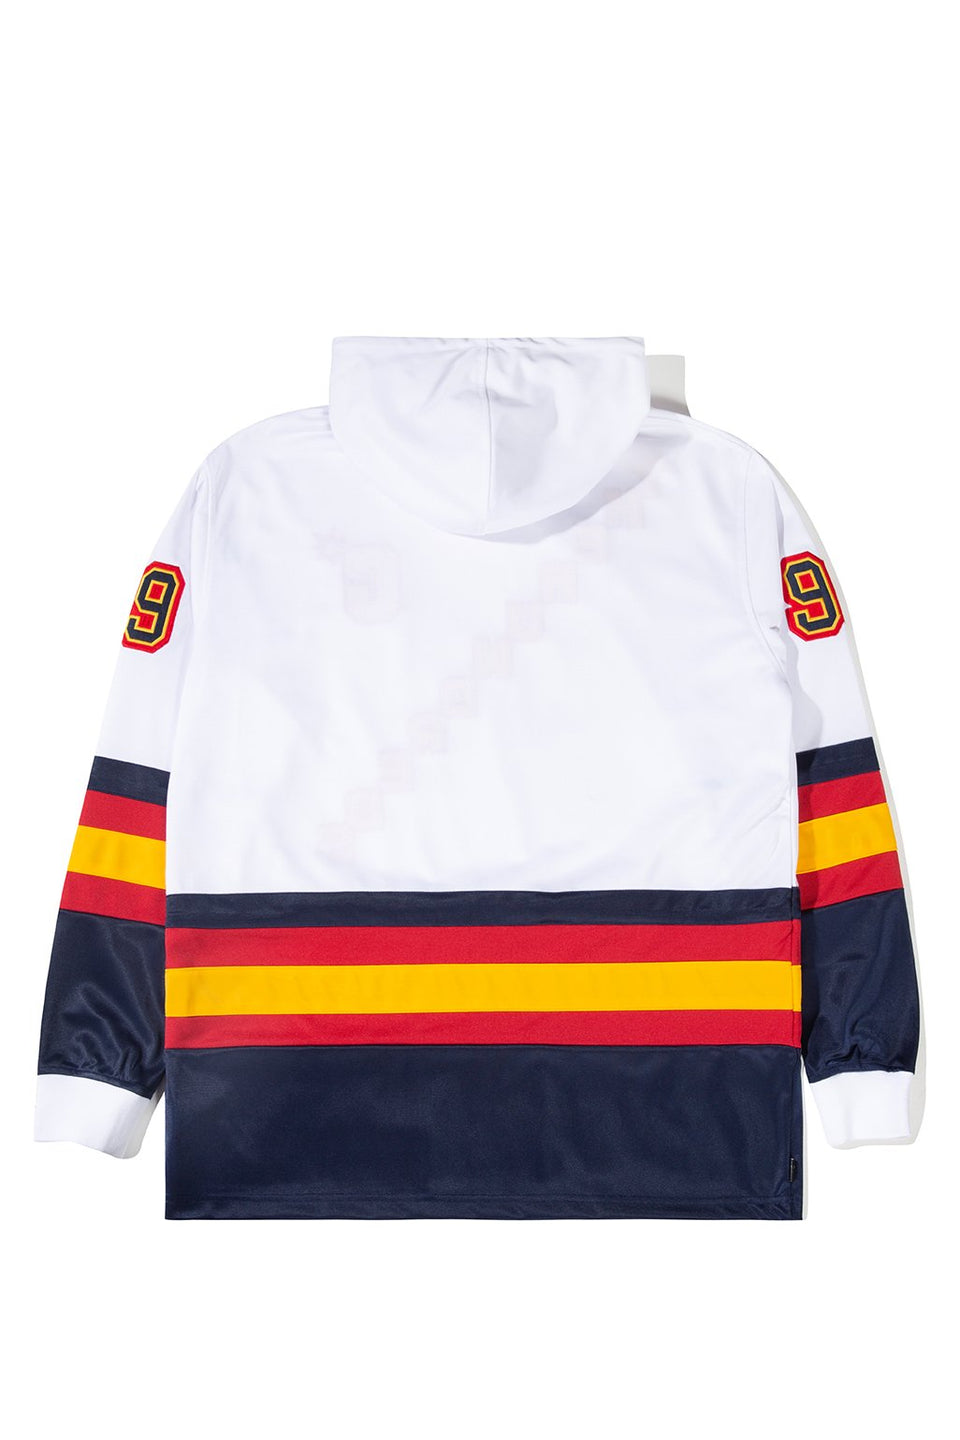 The Hundreds Greats Hooded L/S Jersey TOPS White